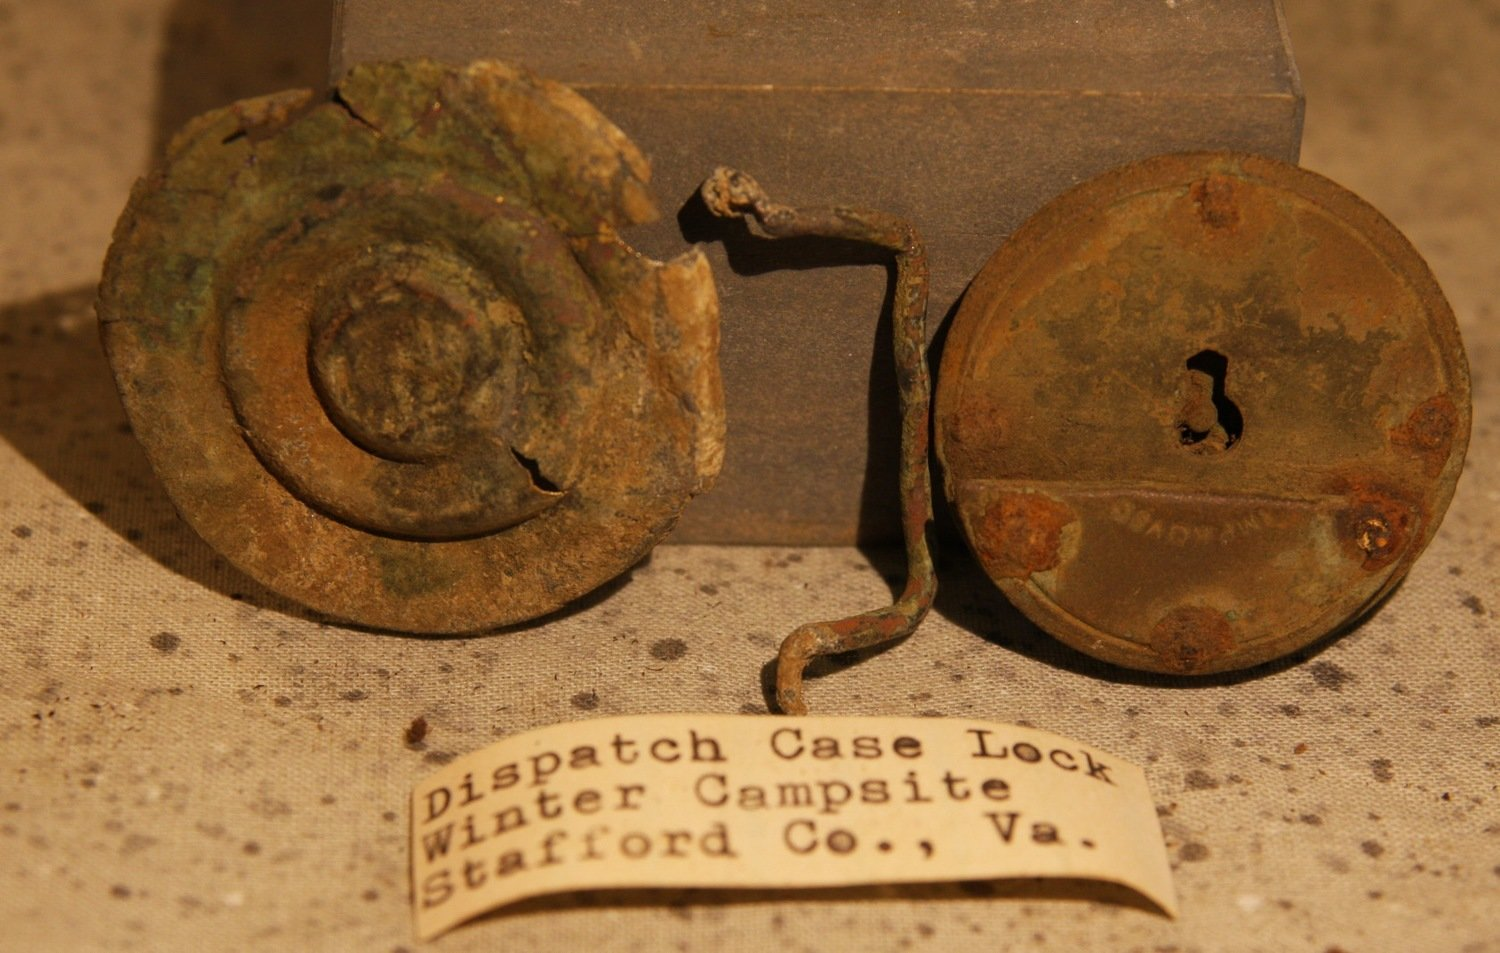 JUST ADDED ON 8/28 - 1862-1863 UNION WINTER CAMP IN STAFFORD, VIRGINIA - Case Lock and Rosette with Original Collector's Label